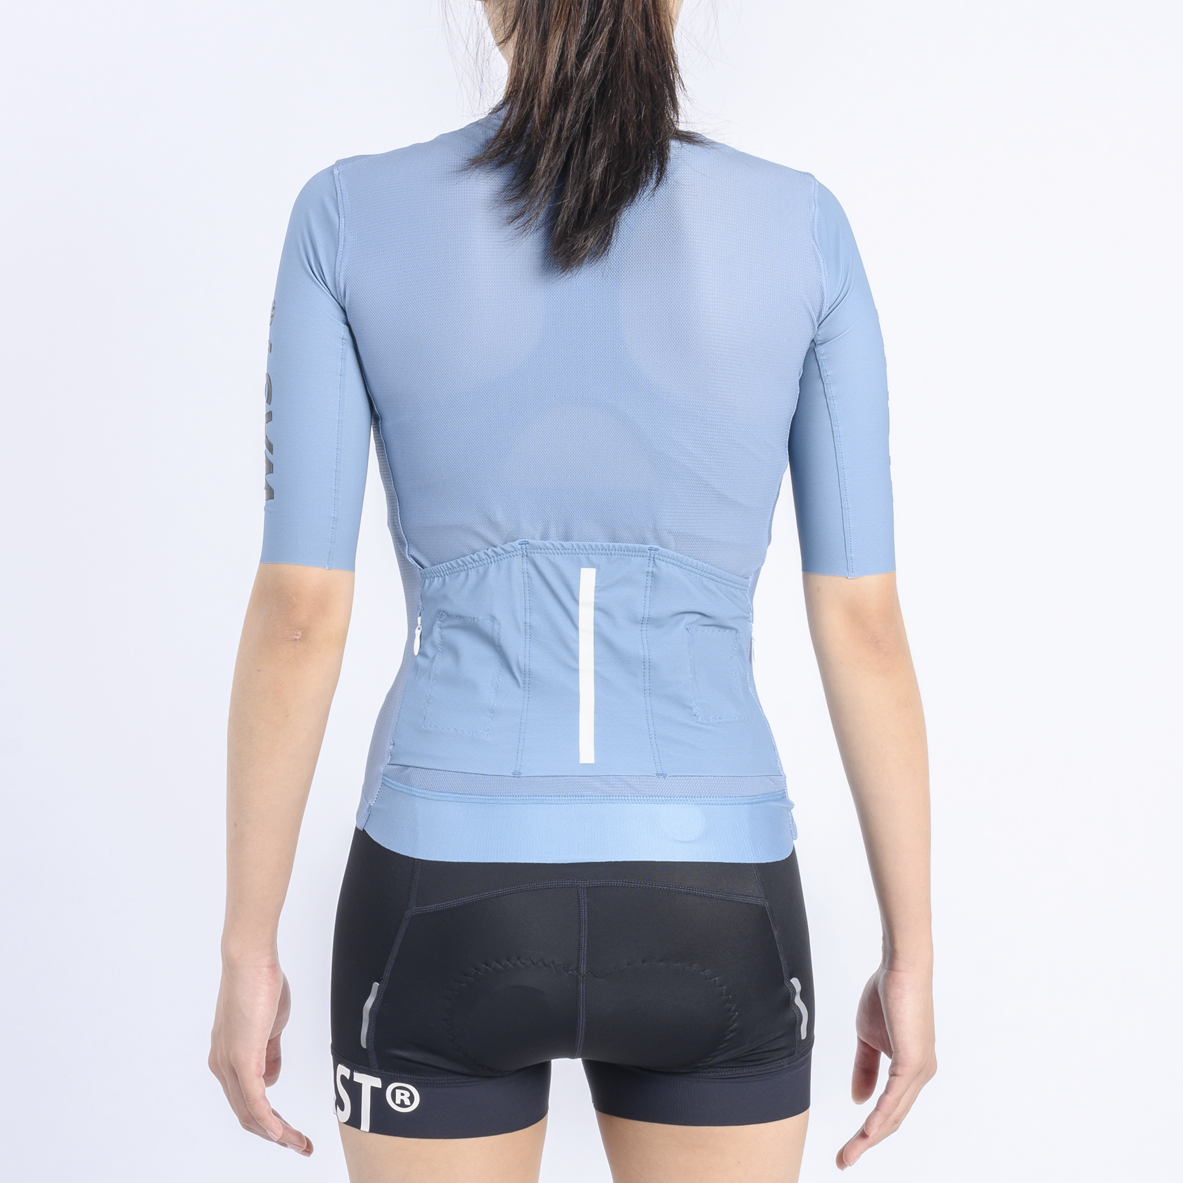 /archive/product/item/images/27a-w9-wbbproaeroshortjersey-paleblue-w-b.png